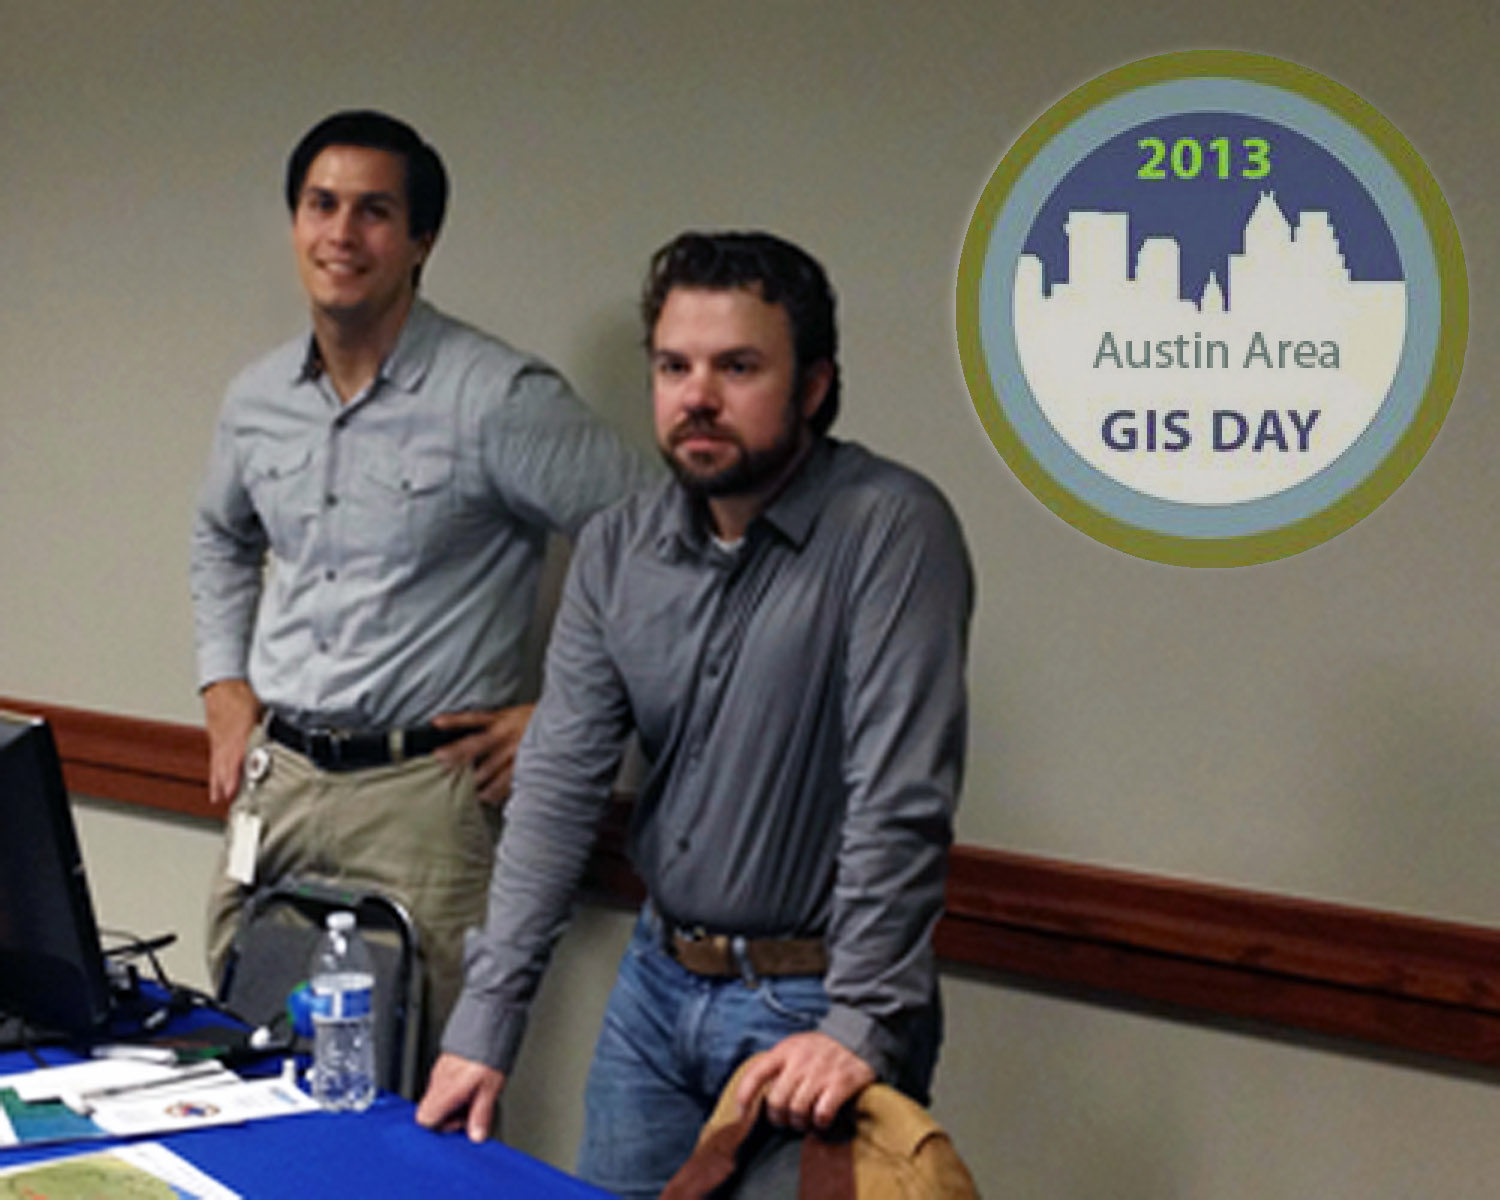 Doctoral Student Robert Bean (R) and student George Sosa (L) represented ASPRS and the Department of Geography and the Environment at GIS Day